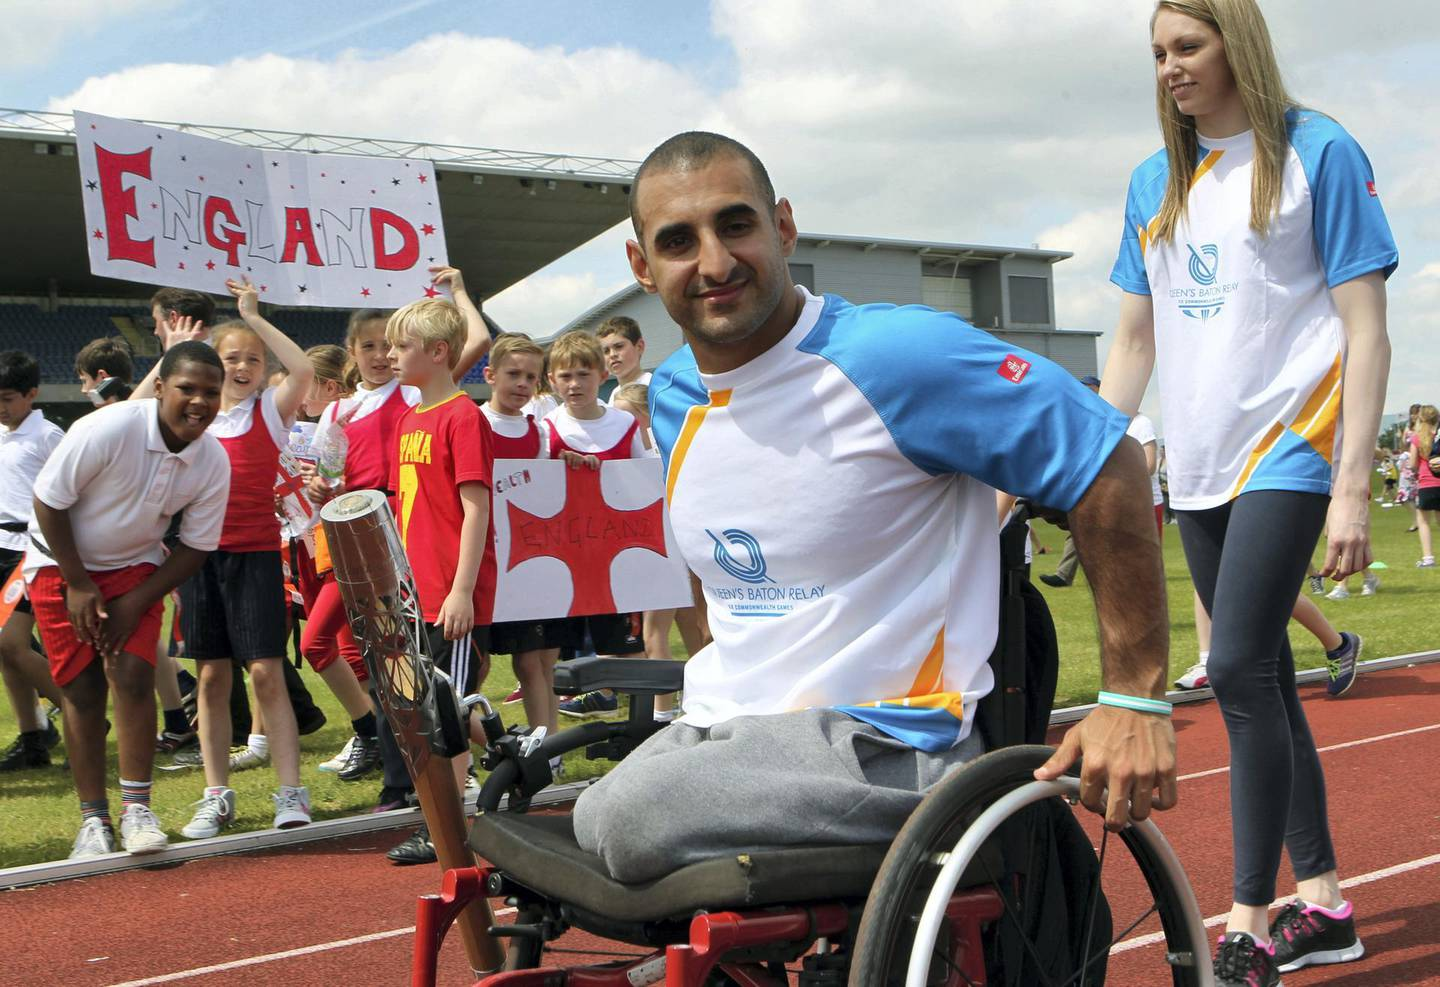 LEEDS, ENGLAND - JUNE 12:   (EDITORIAL USE ONLY, NO SALES)  In this handout image provided by Glasgow 2014 Ltd, Baton bearer Ali Jawad carries the Queen's Baton at the John Charles Centre for Sport on June 12, 2014 in Leeds, England.  England is nation 69 of 70 nations and territories the Queen's Baton will visit. (Photo by David Cheskin/Glasgow 2014 Ltd via Getty Images)